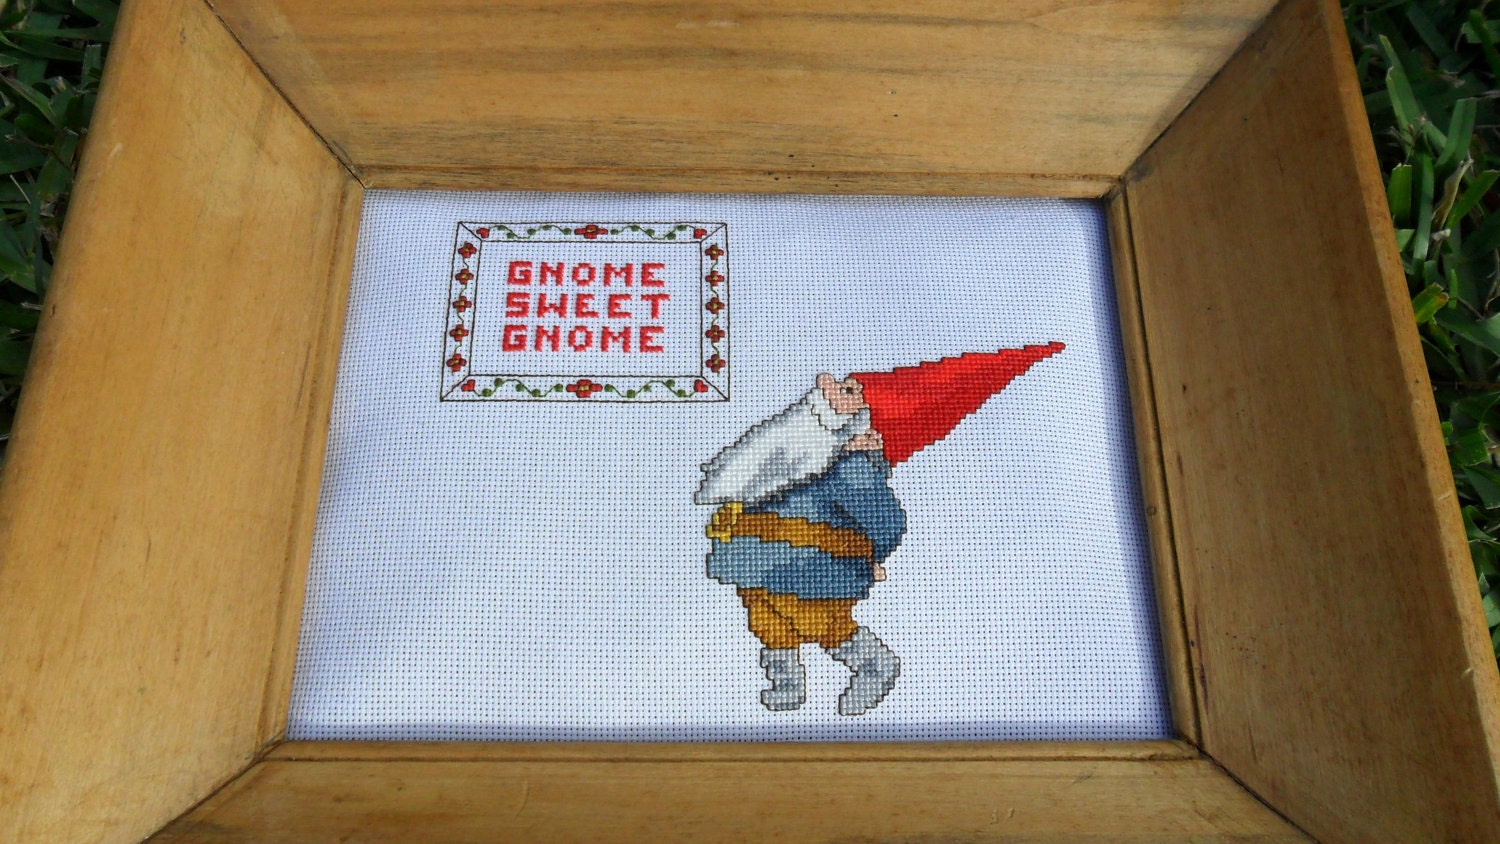 Gnome Sweet Gnome cross stitch art